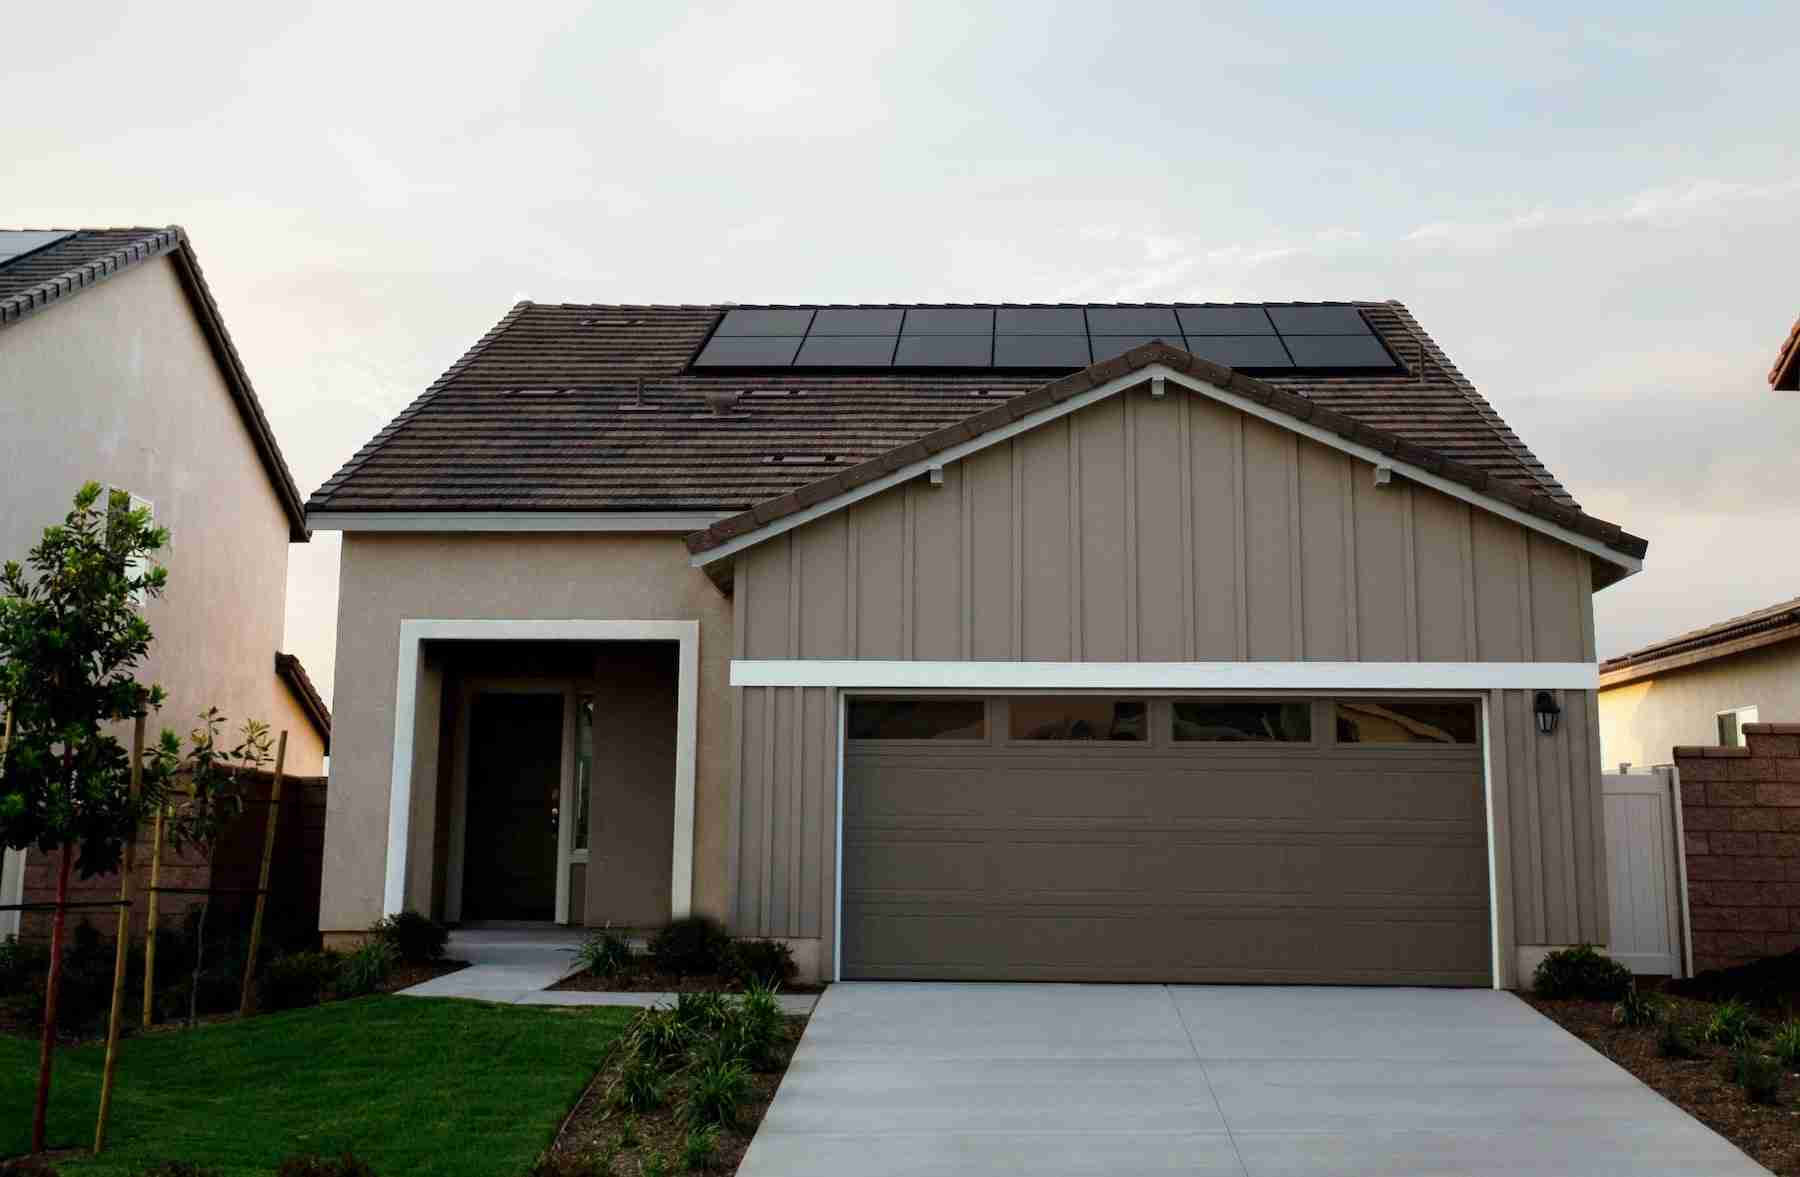 cost of solar panels on roof